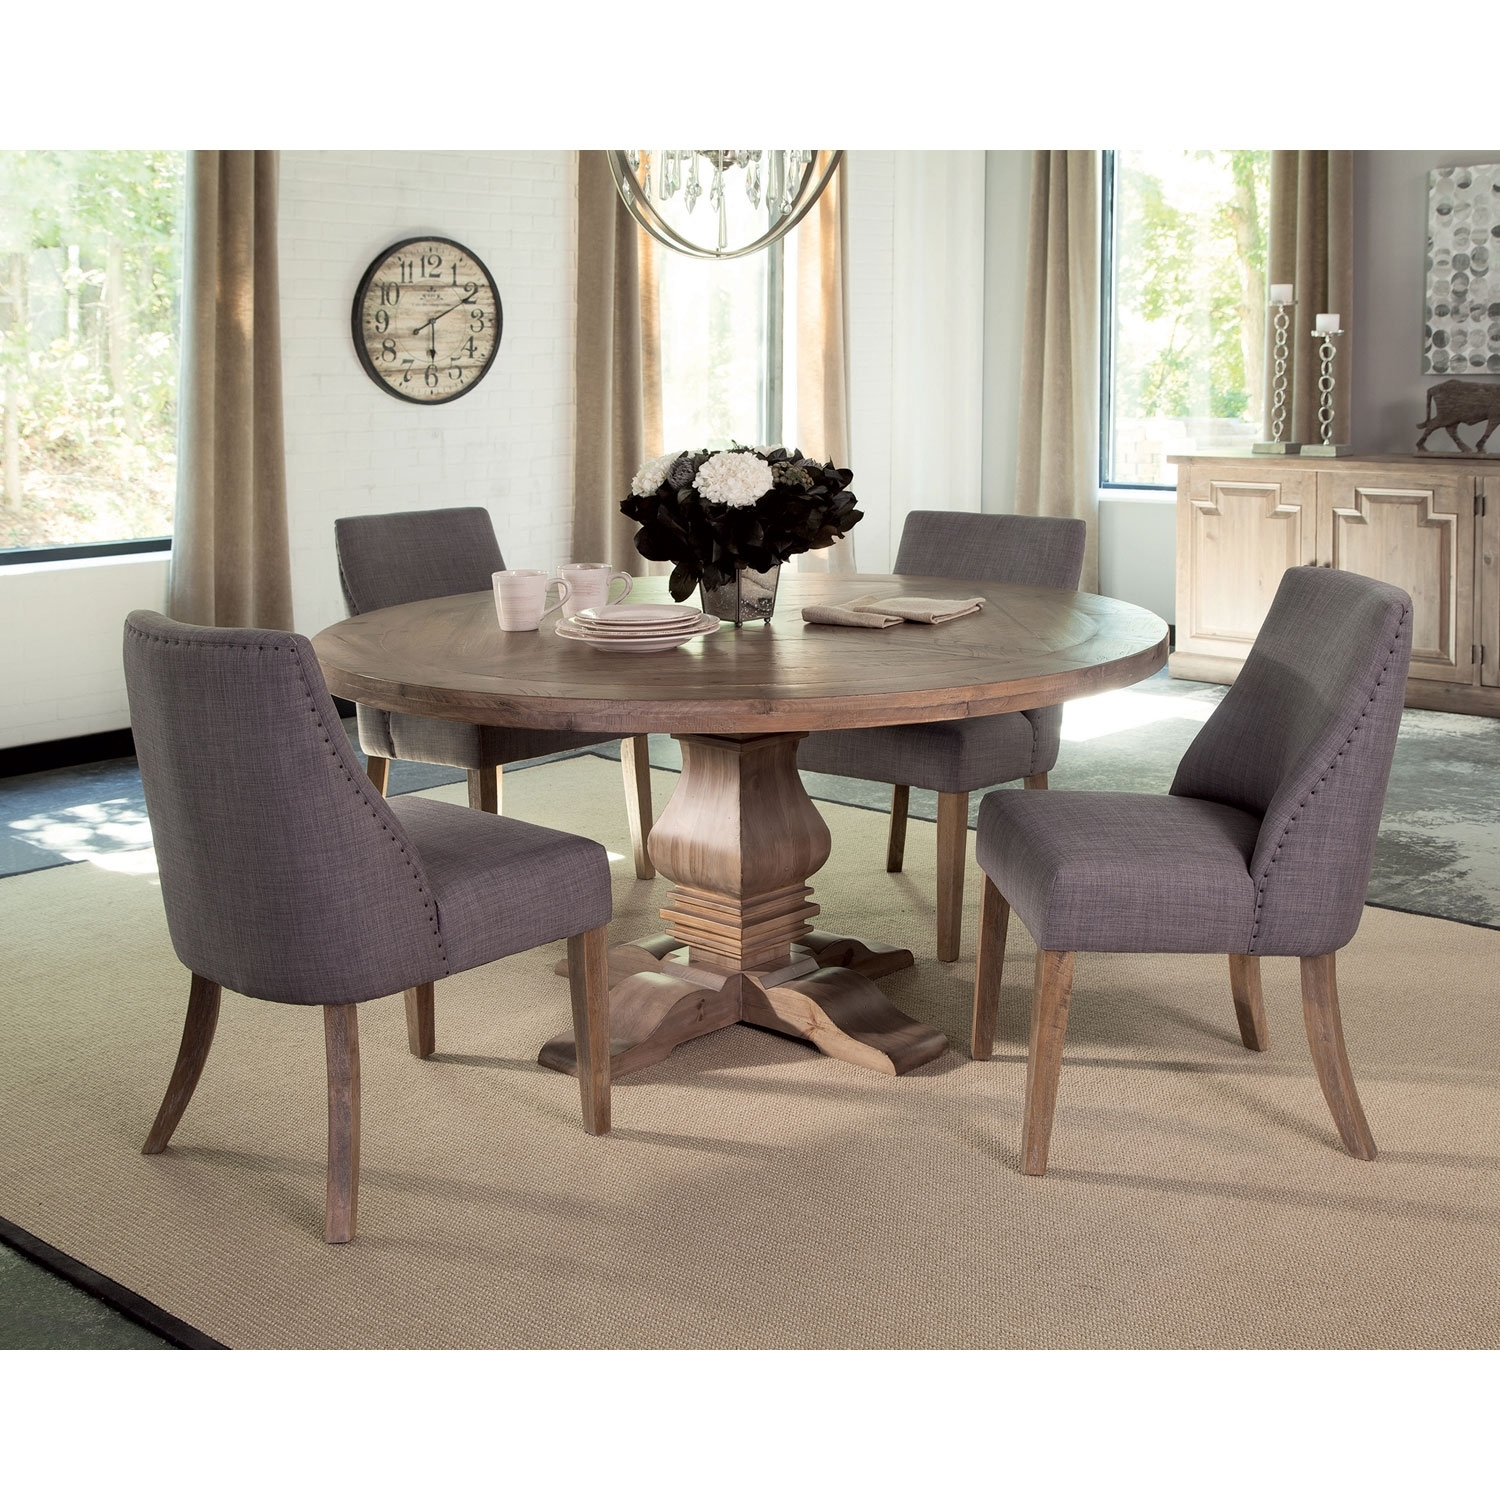 Catchy Circle Kitchen Table In Donny Osmond Home Florence Pine Round With 2018 Macie Round Dining Tables (Image 4 of 20)